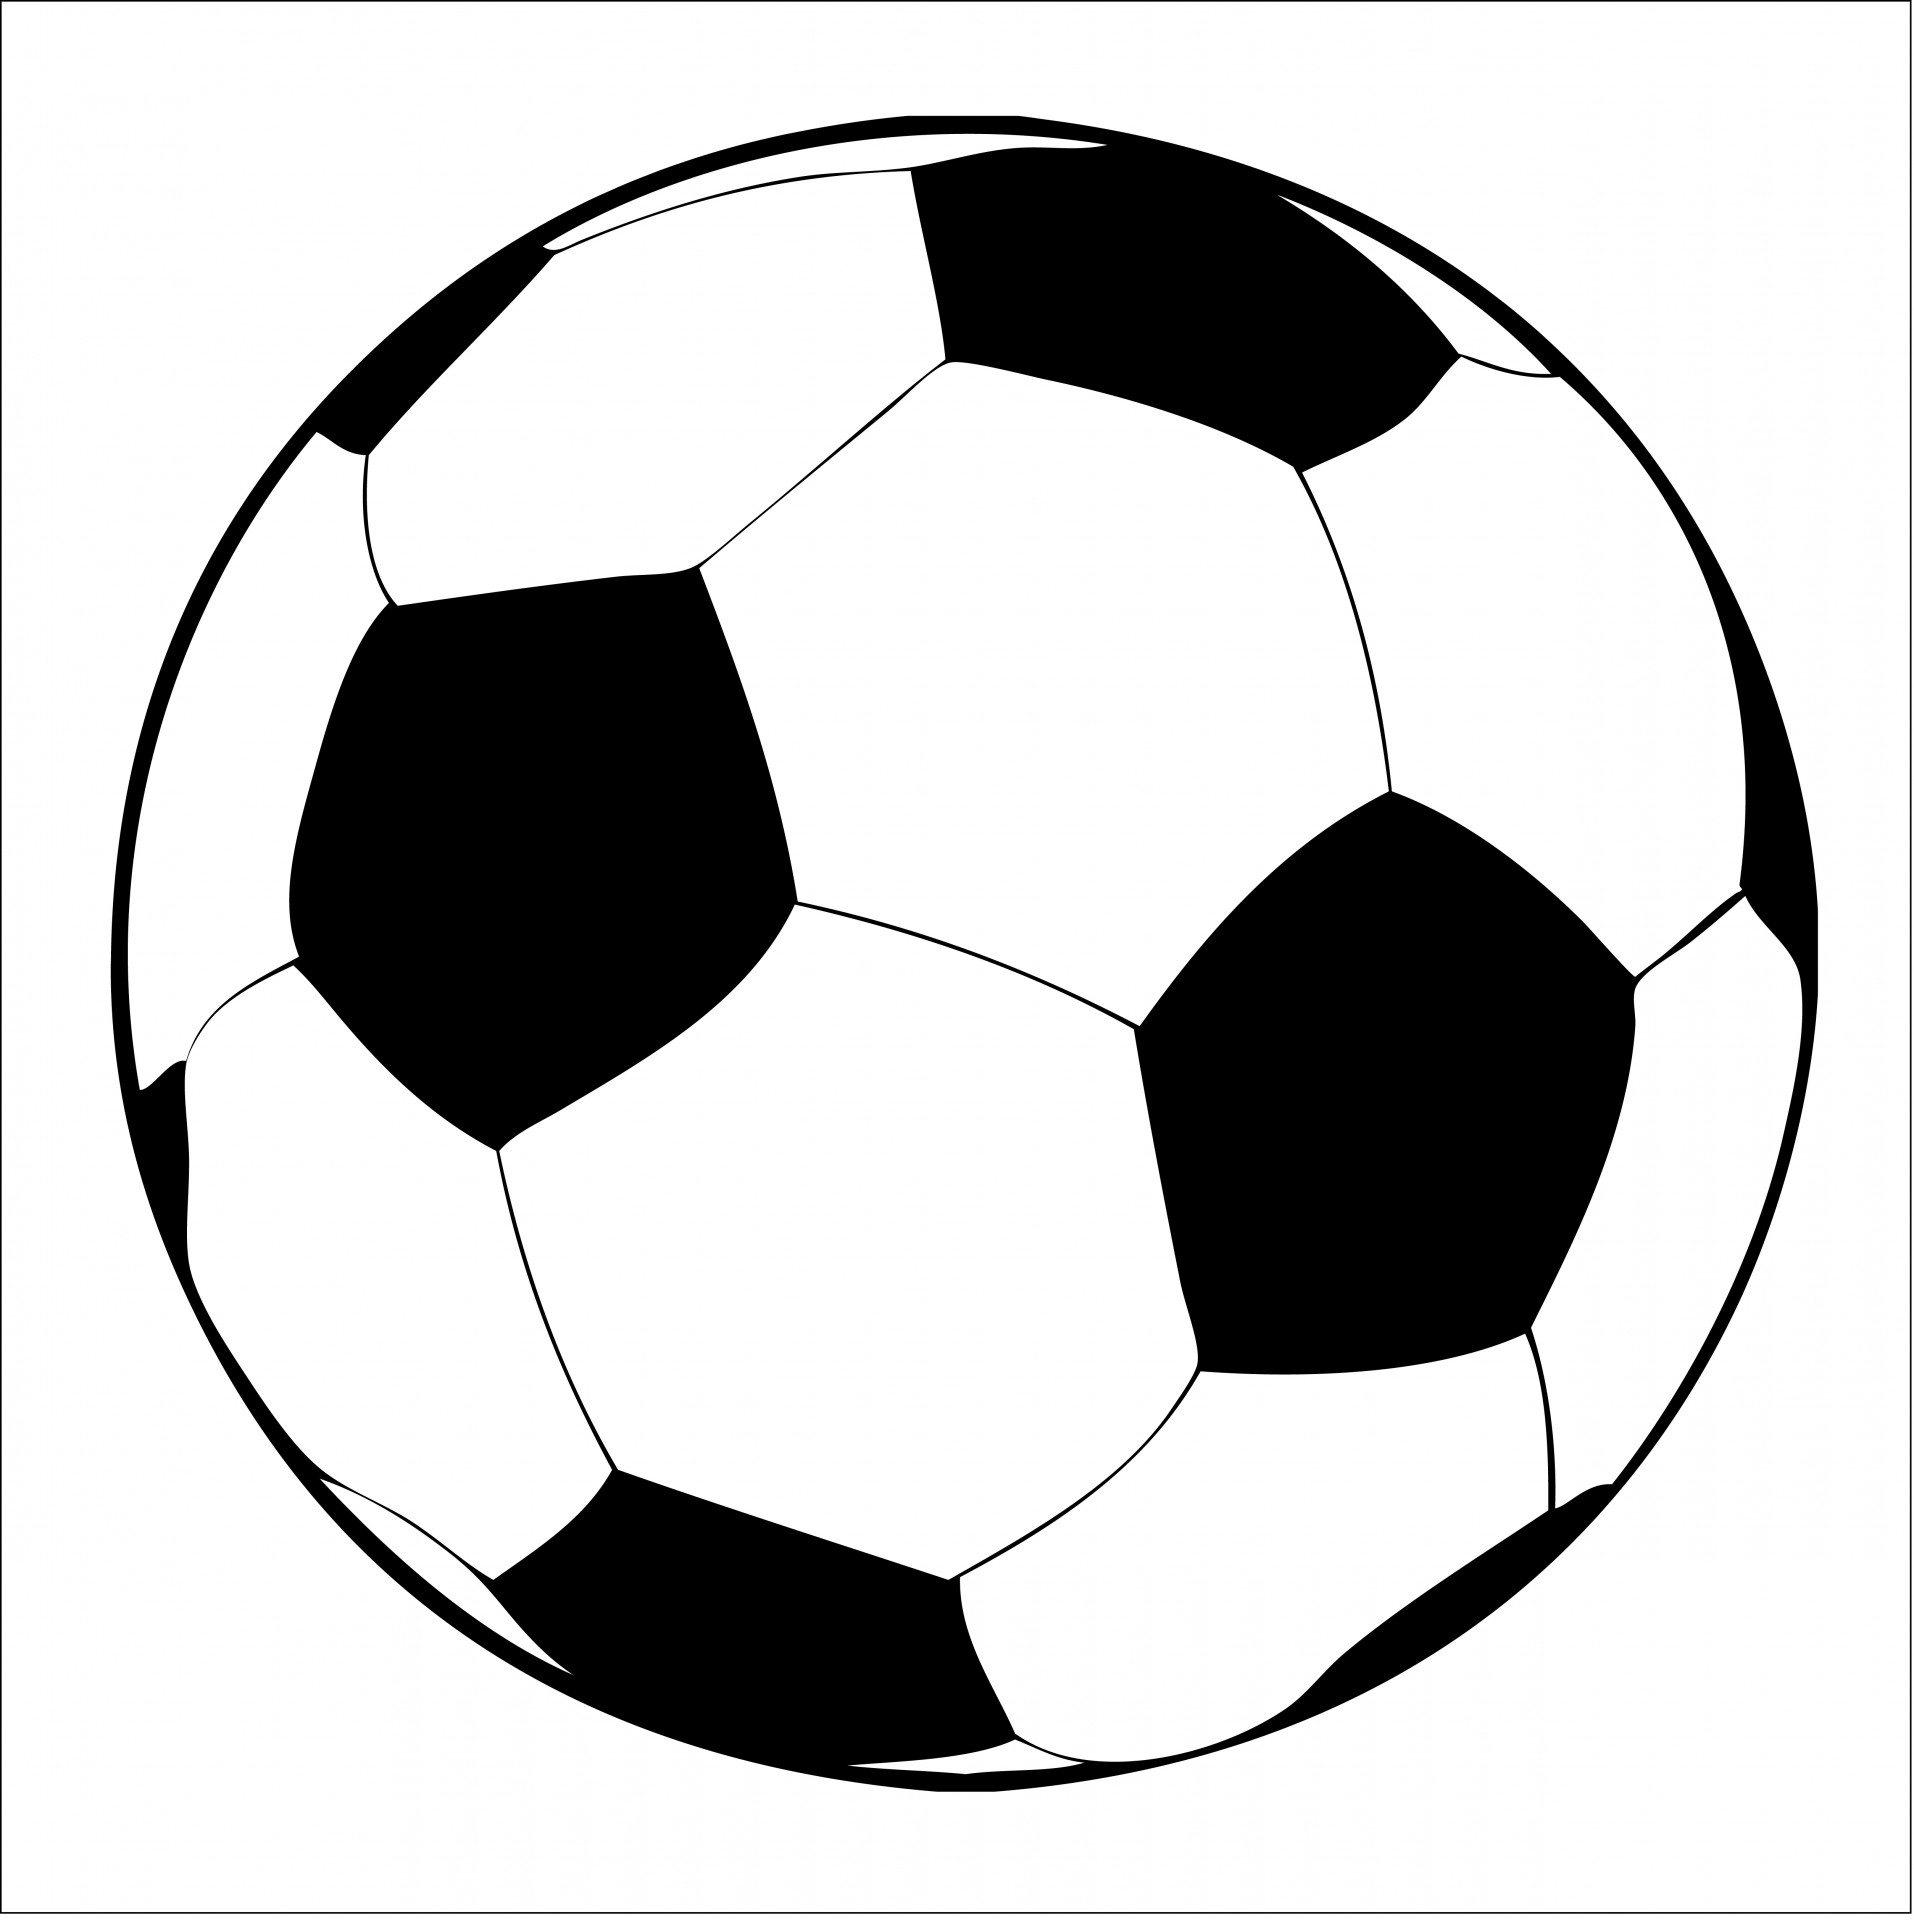 Clipart nike soccer ball picture transparent stock Nike soccer ball clipart - ClipartFox picture transparent stock